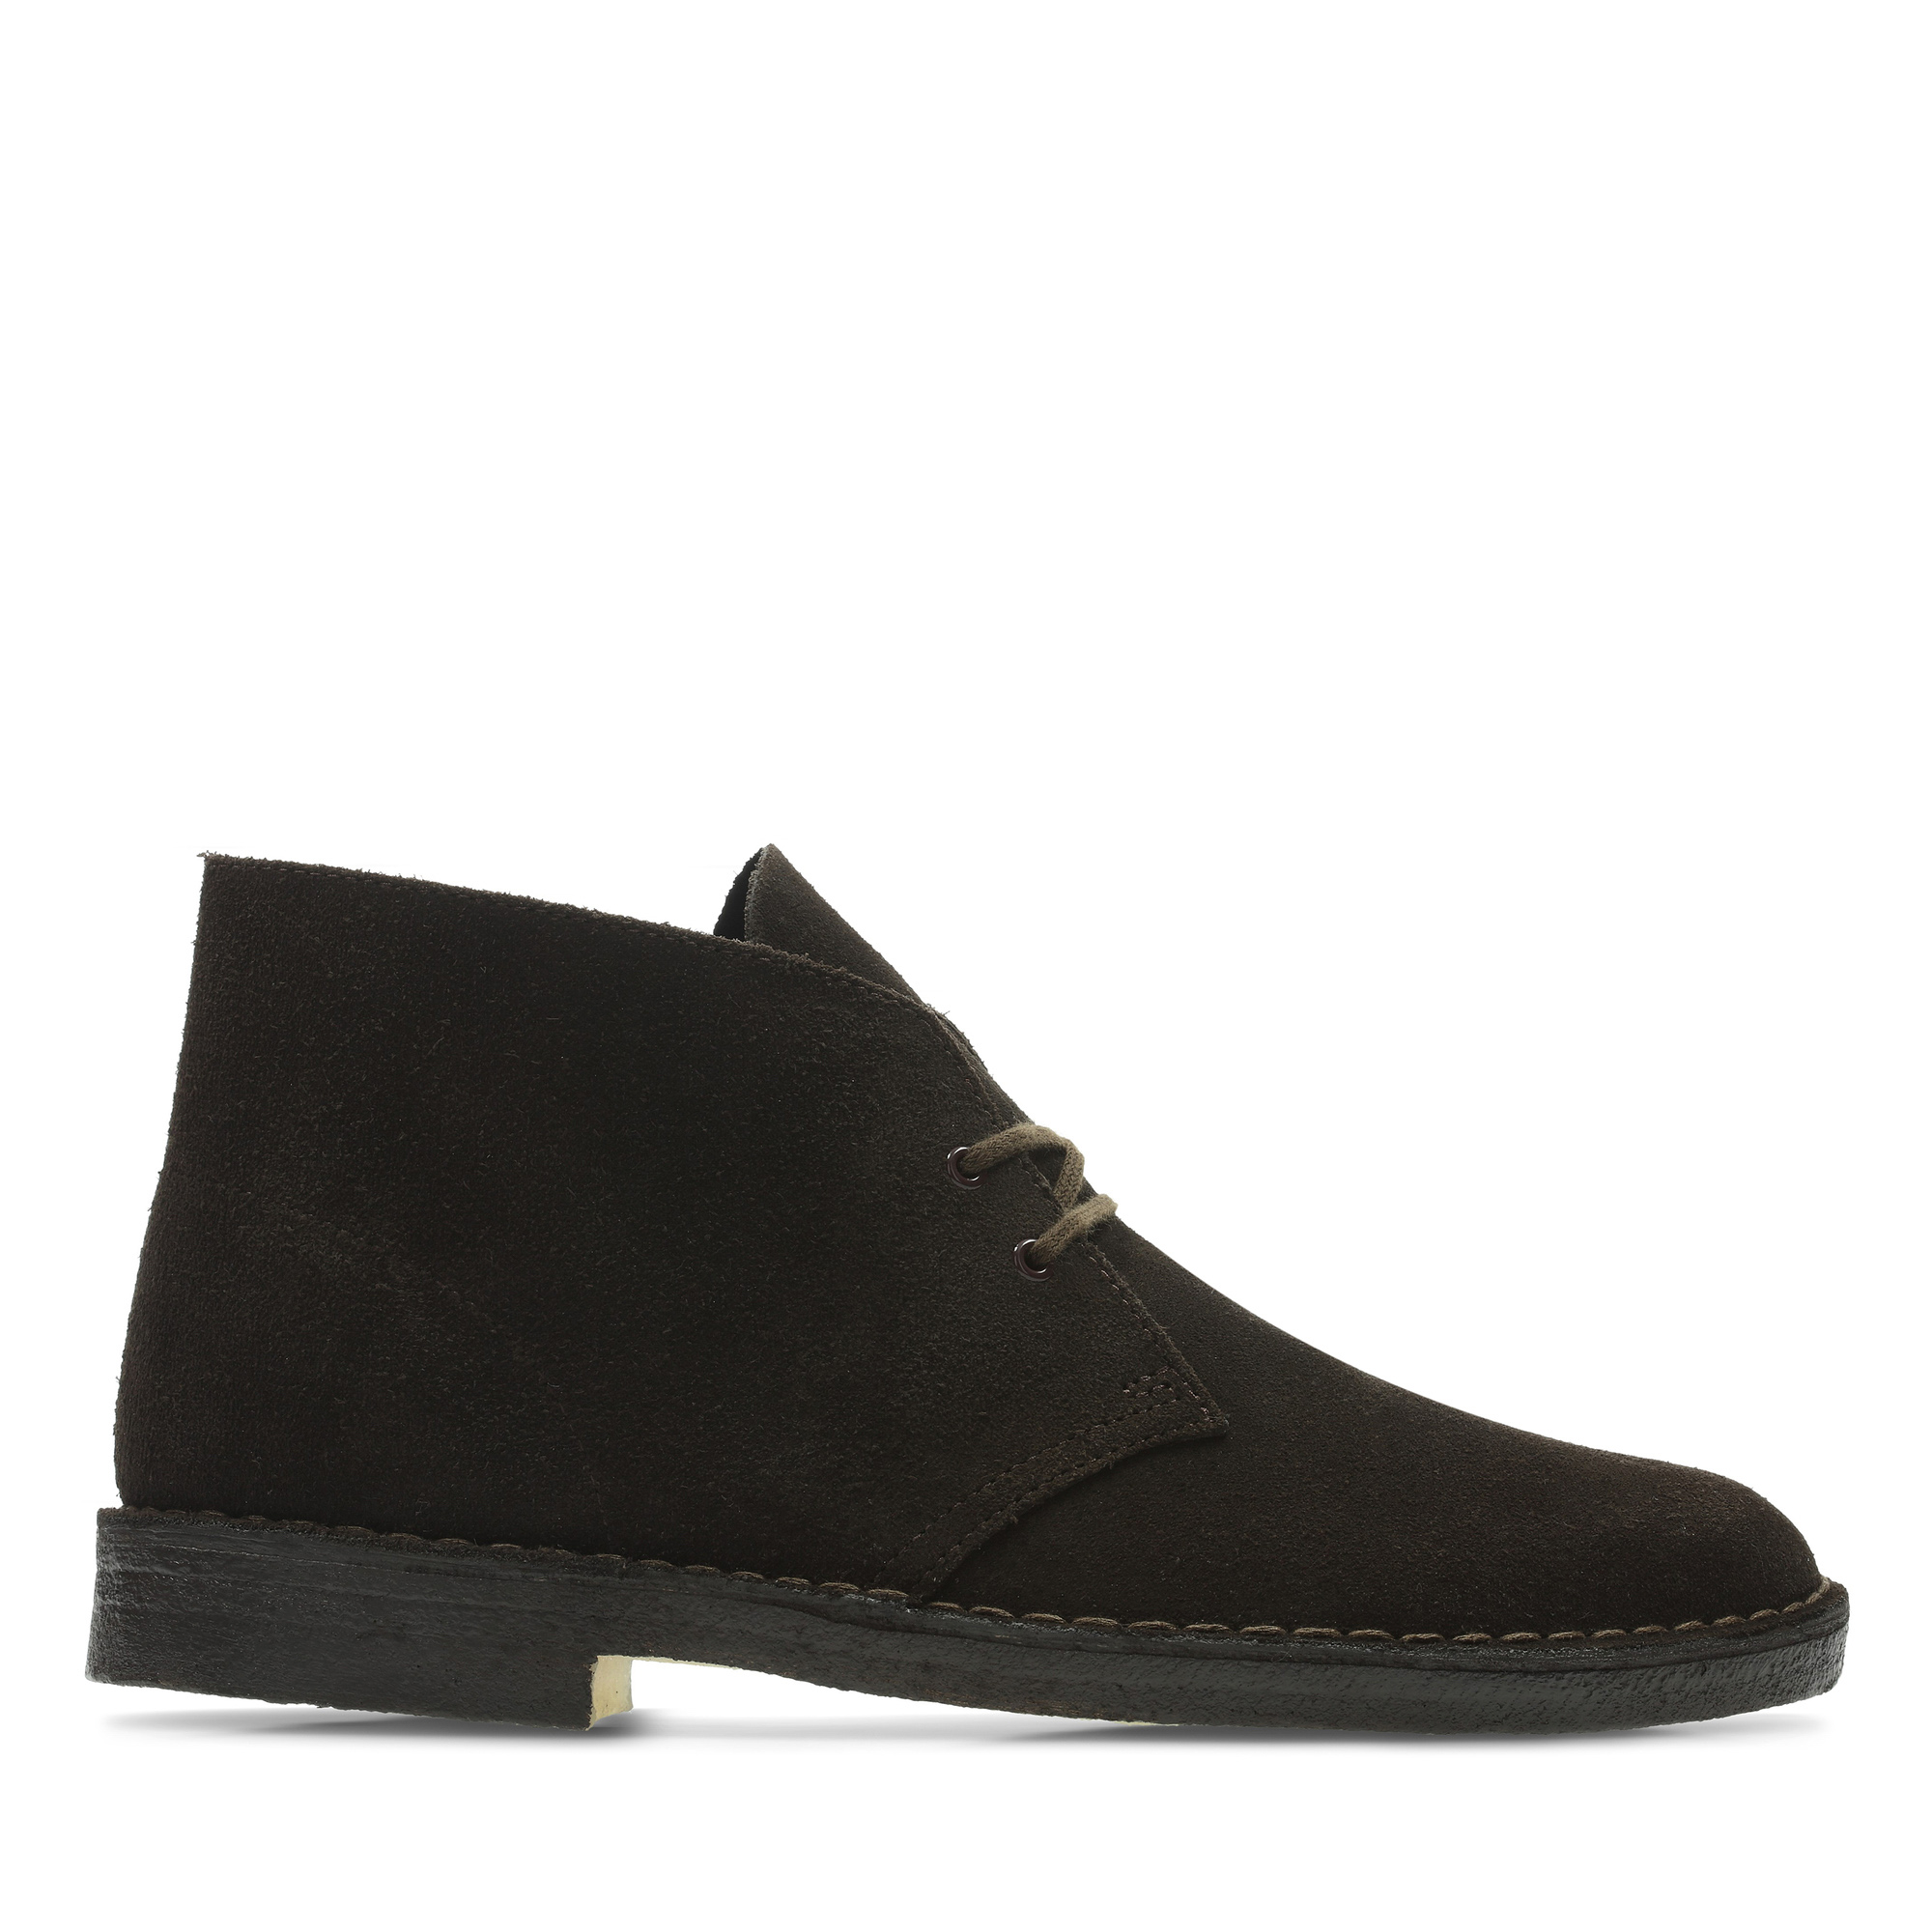 Men's Collection | Shoes and Boots Shop Online | Clarks